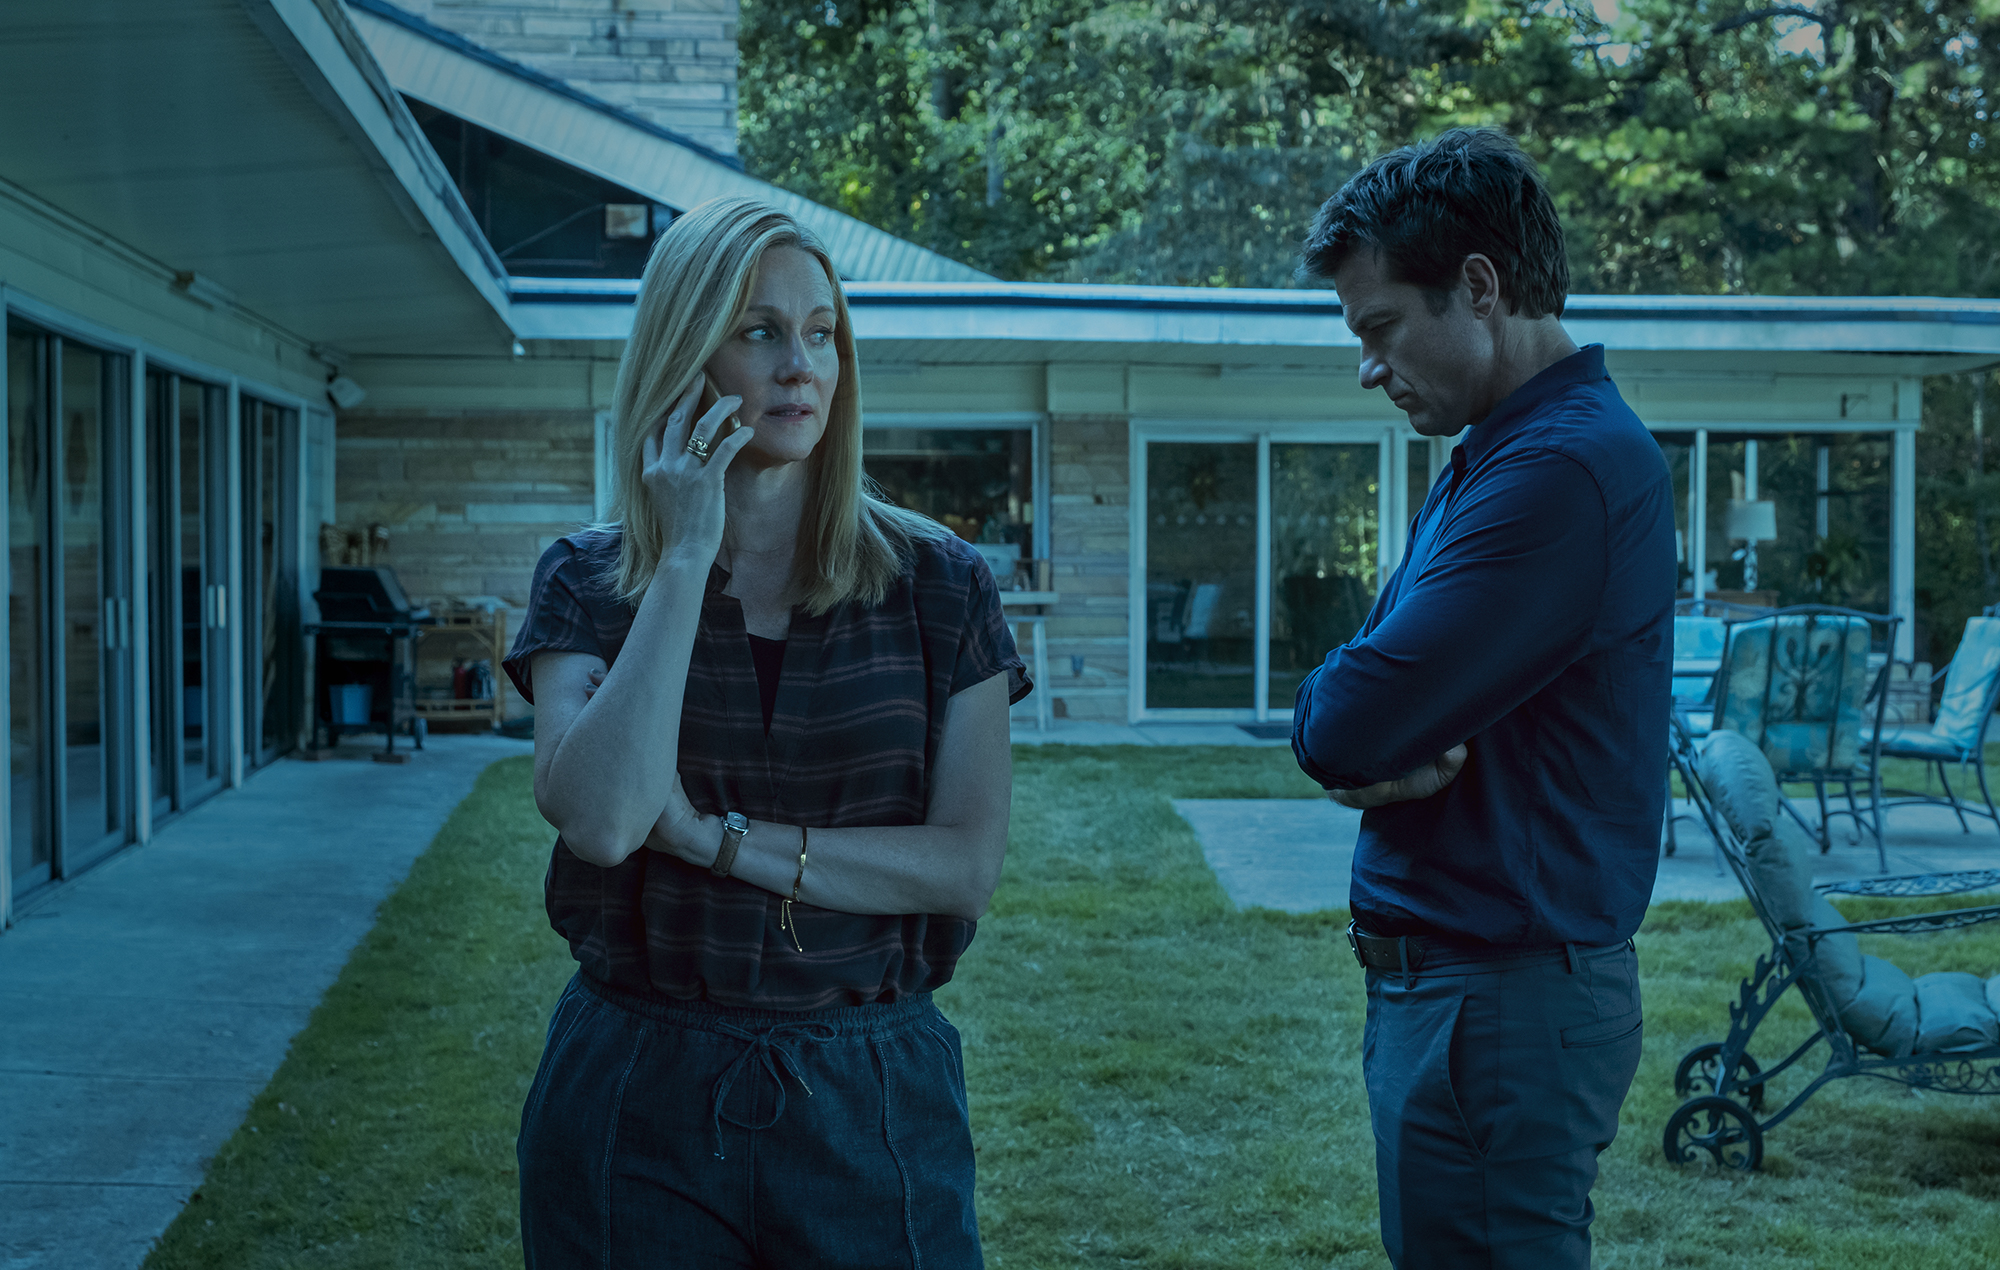 Preview And Release Date: Ozark Season 4